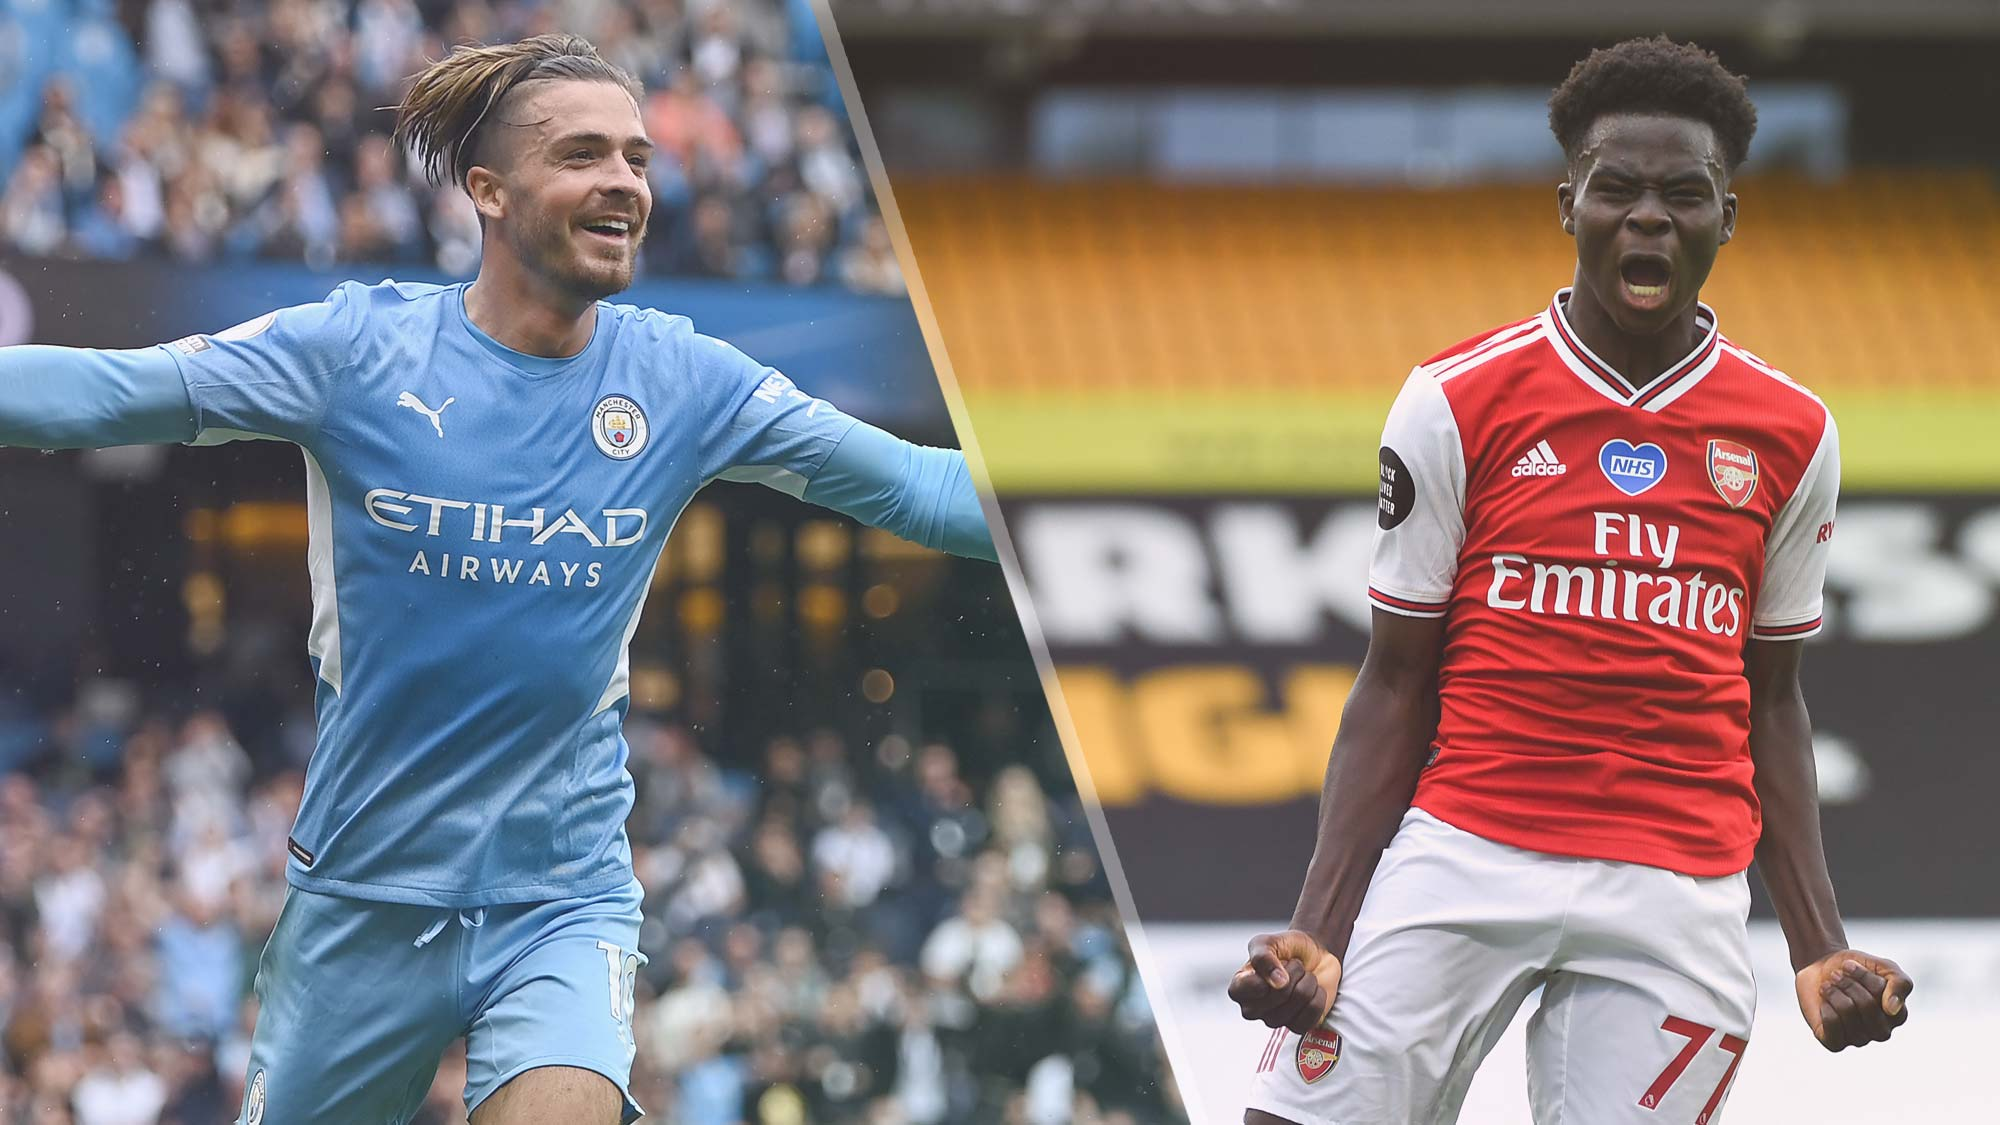 CitizensvsGunners, The Reds and The Blues, others live on DStv this weekend